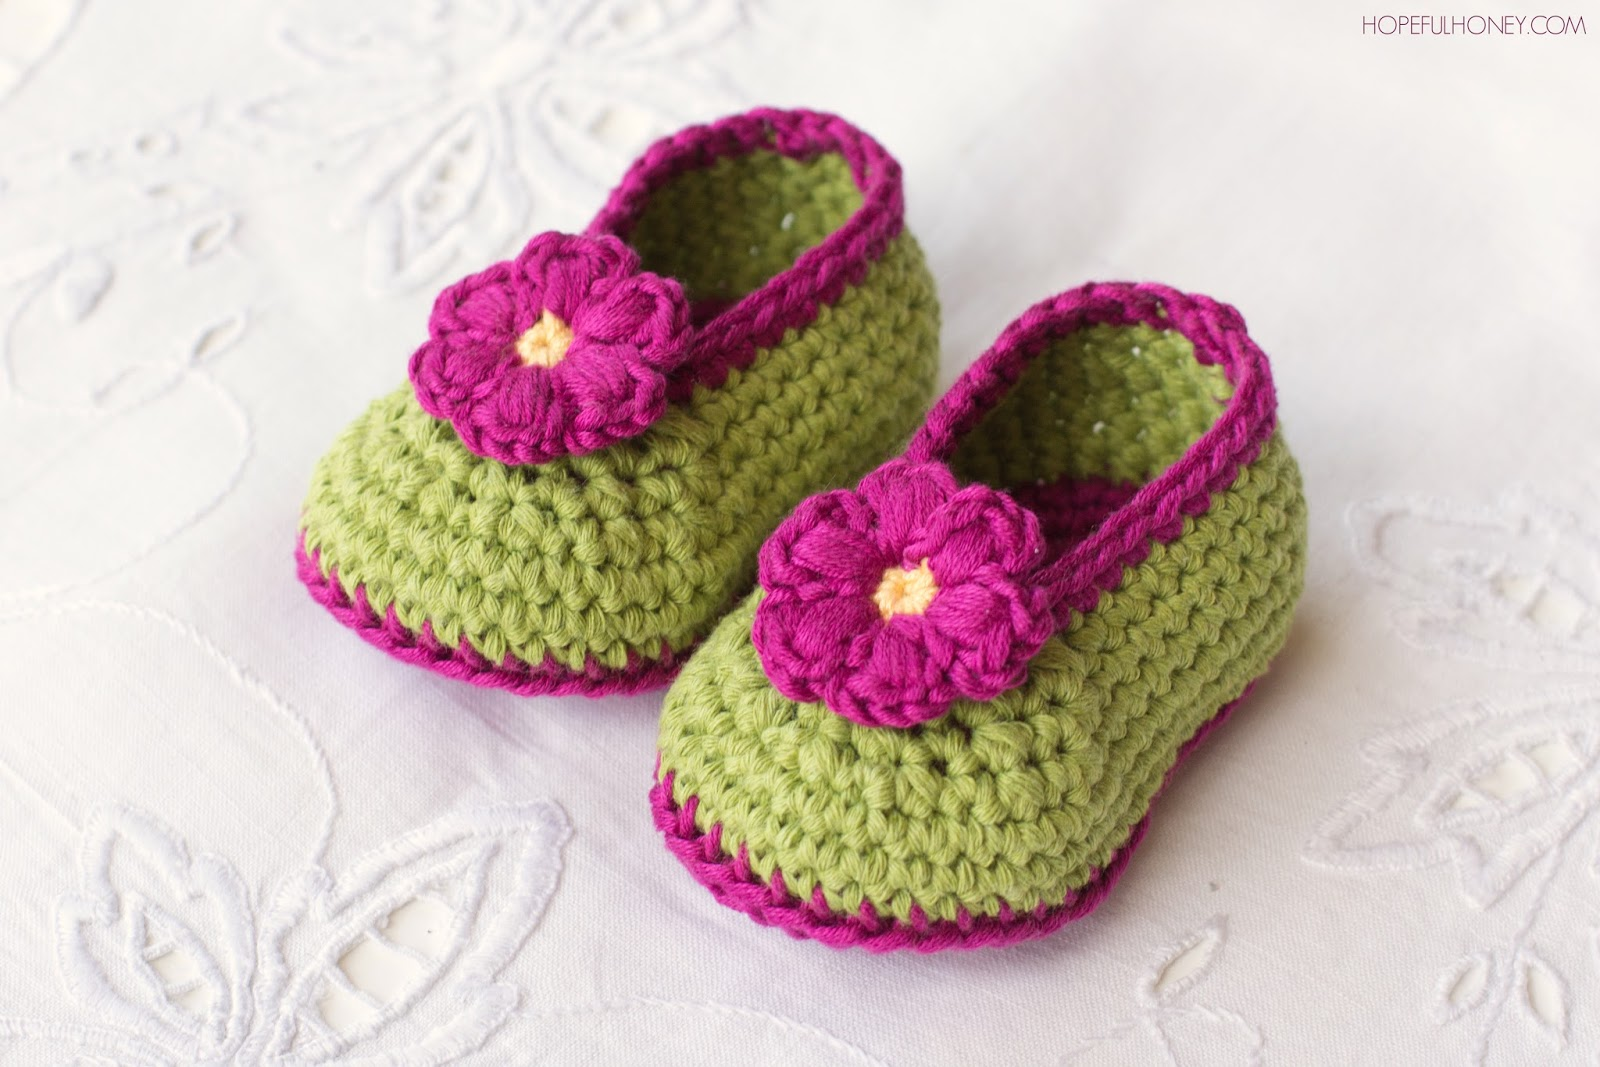 Crochet Baby Booties Written Pattern : Hopeful Honey Craft, Crochet, Create: Fairy Blossom Baby ...